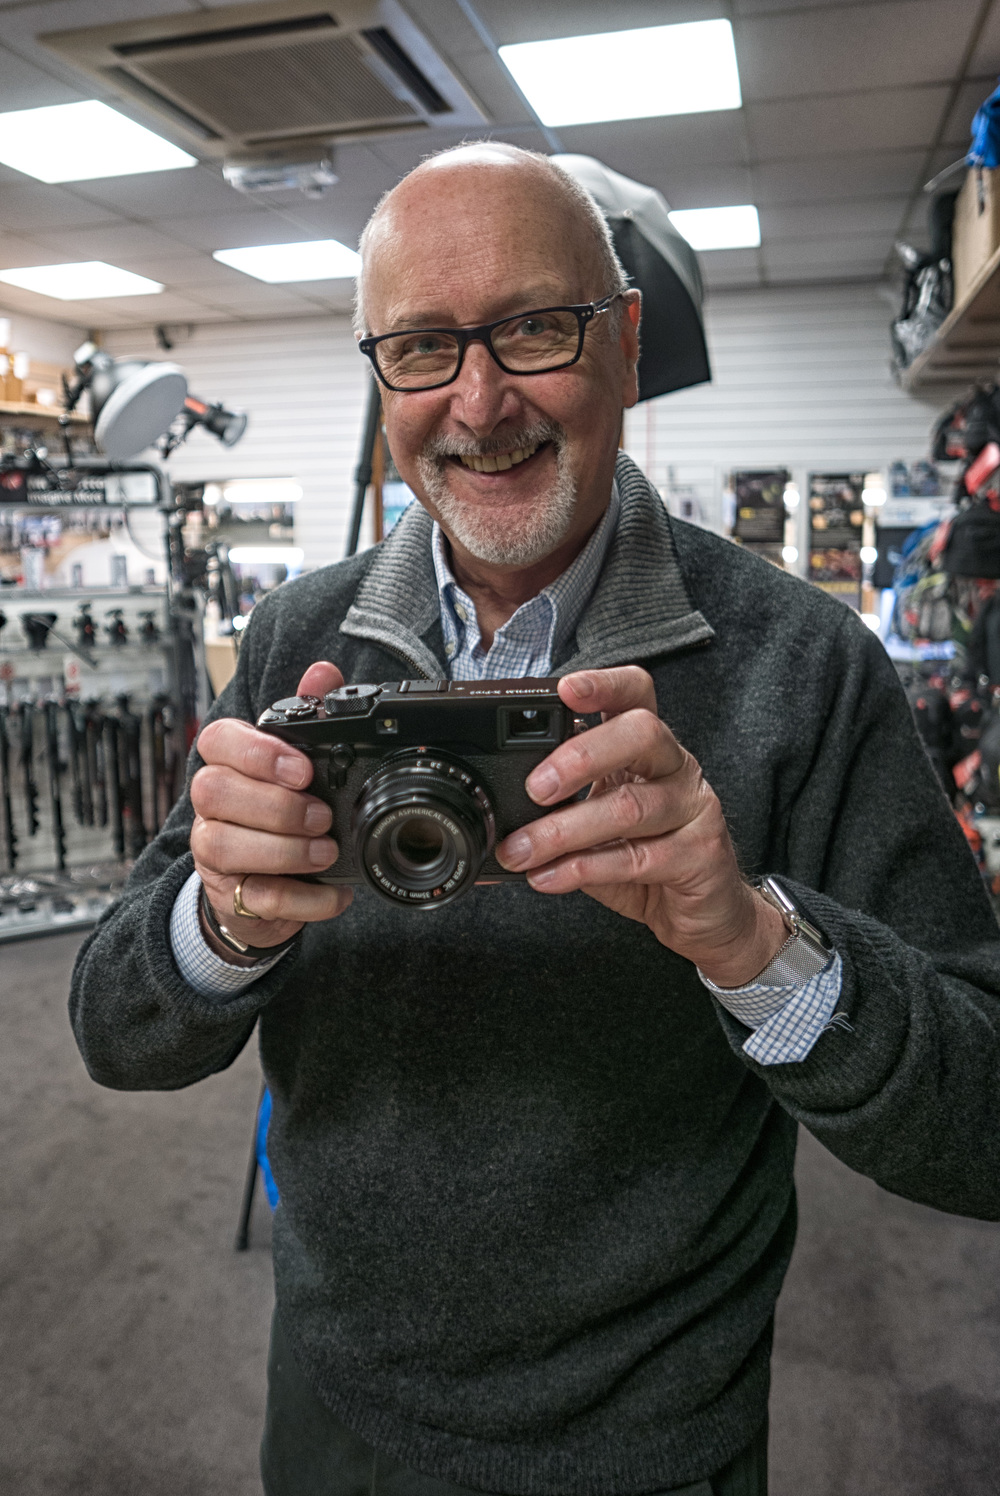 Look what I got: The X-Pro2, my private viewing at Chiswick Camera Centre